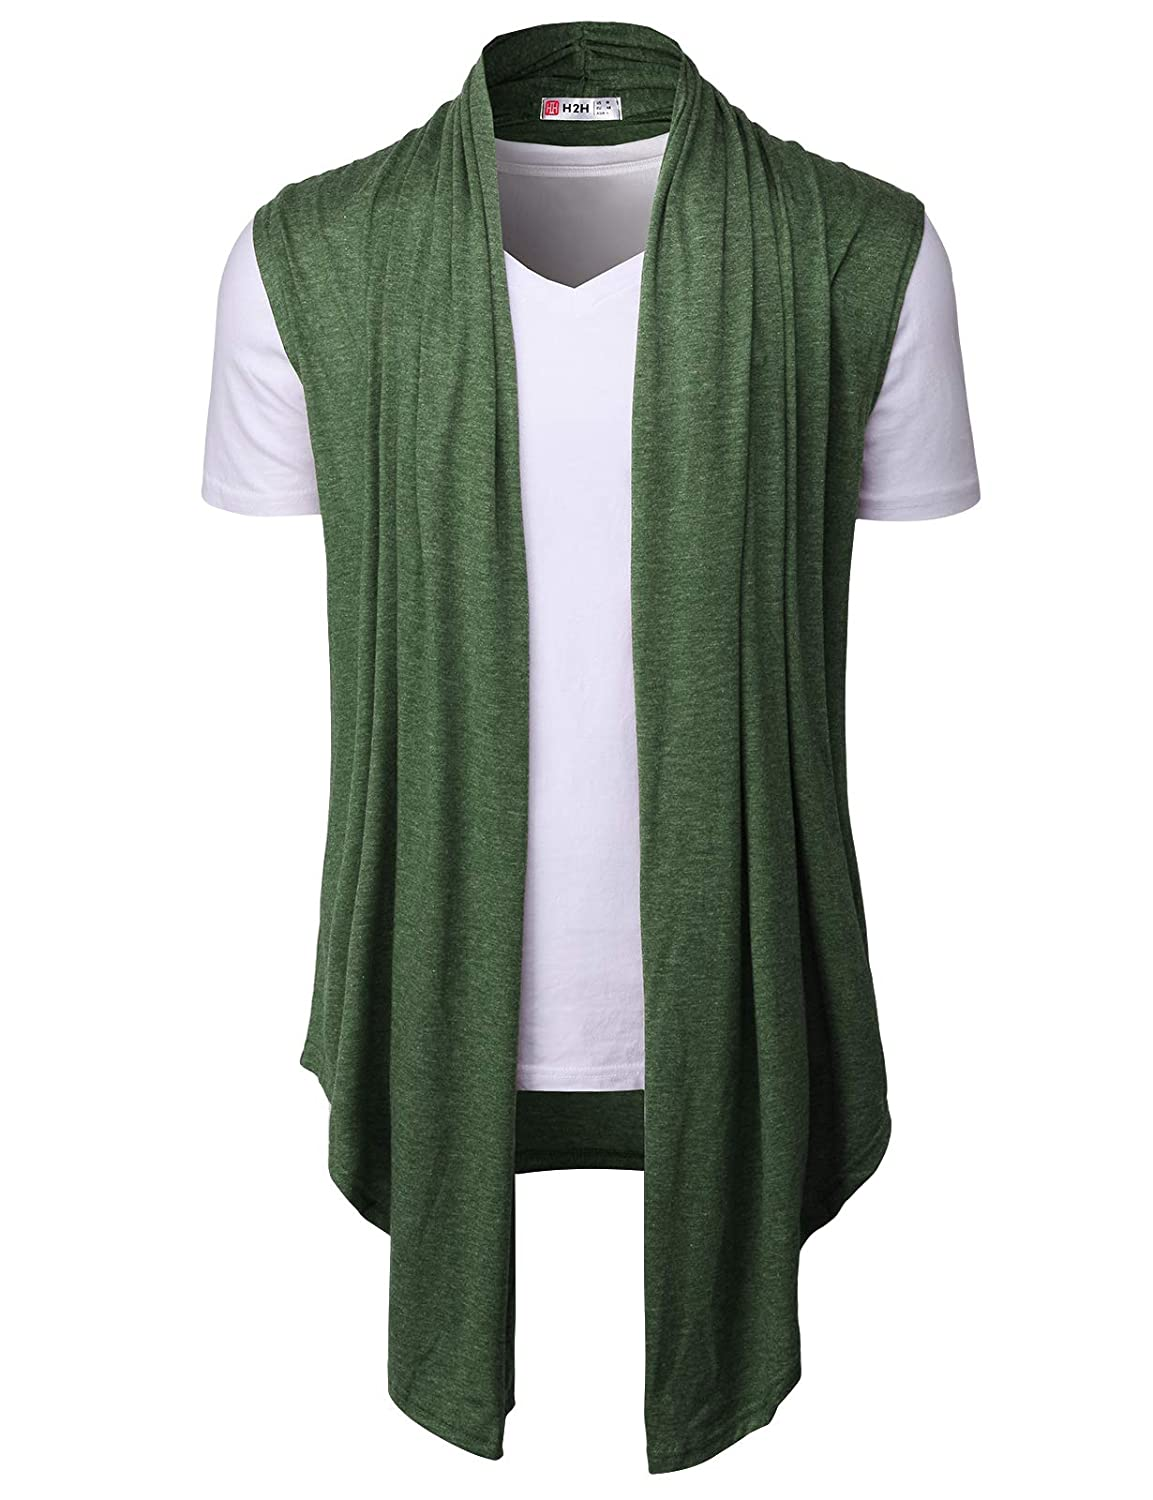 H2H Mens Casual Shawl Collar Cardigan Sleeveless Sweaters with No Button